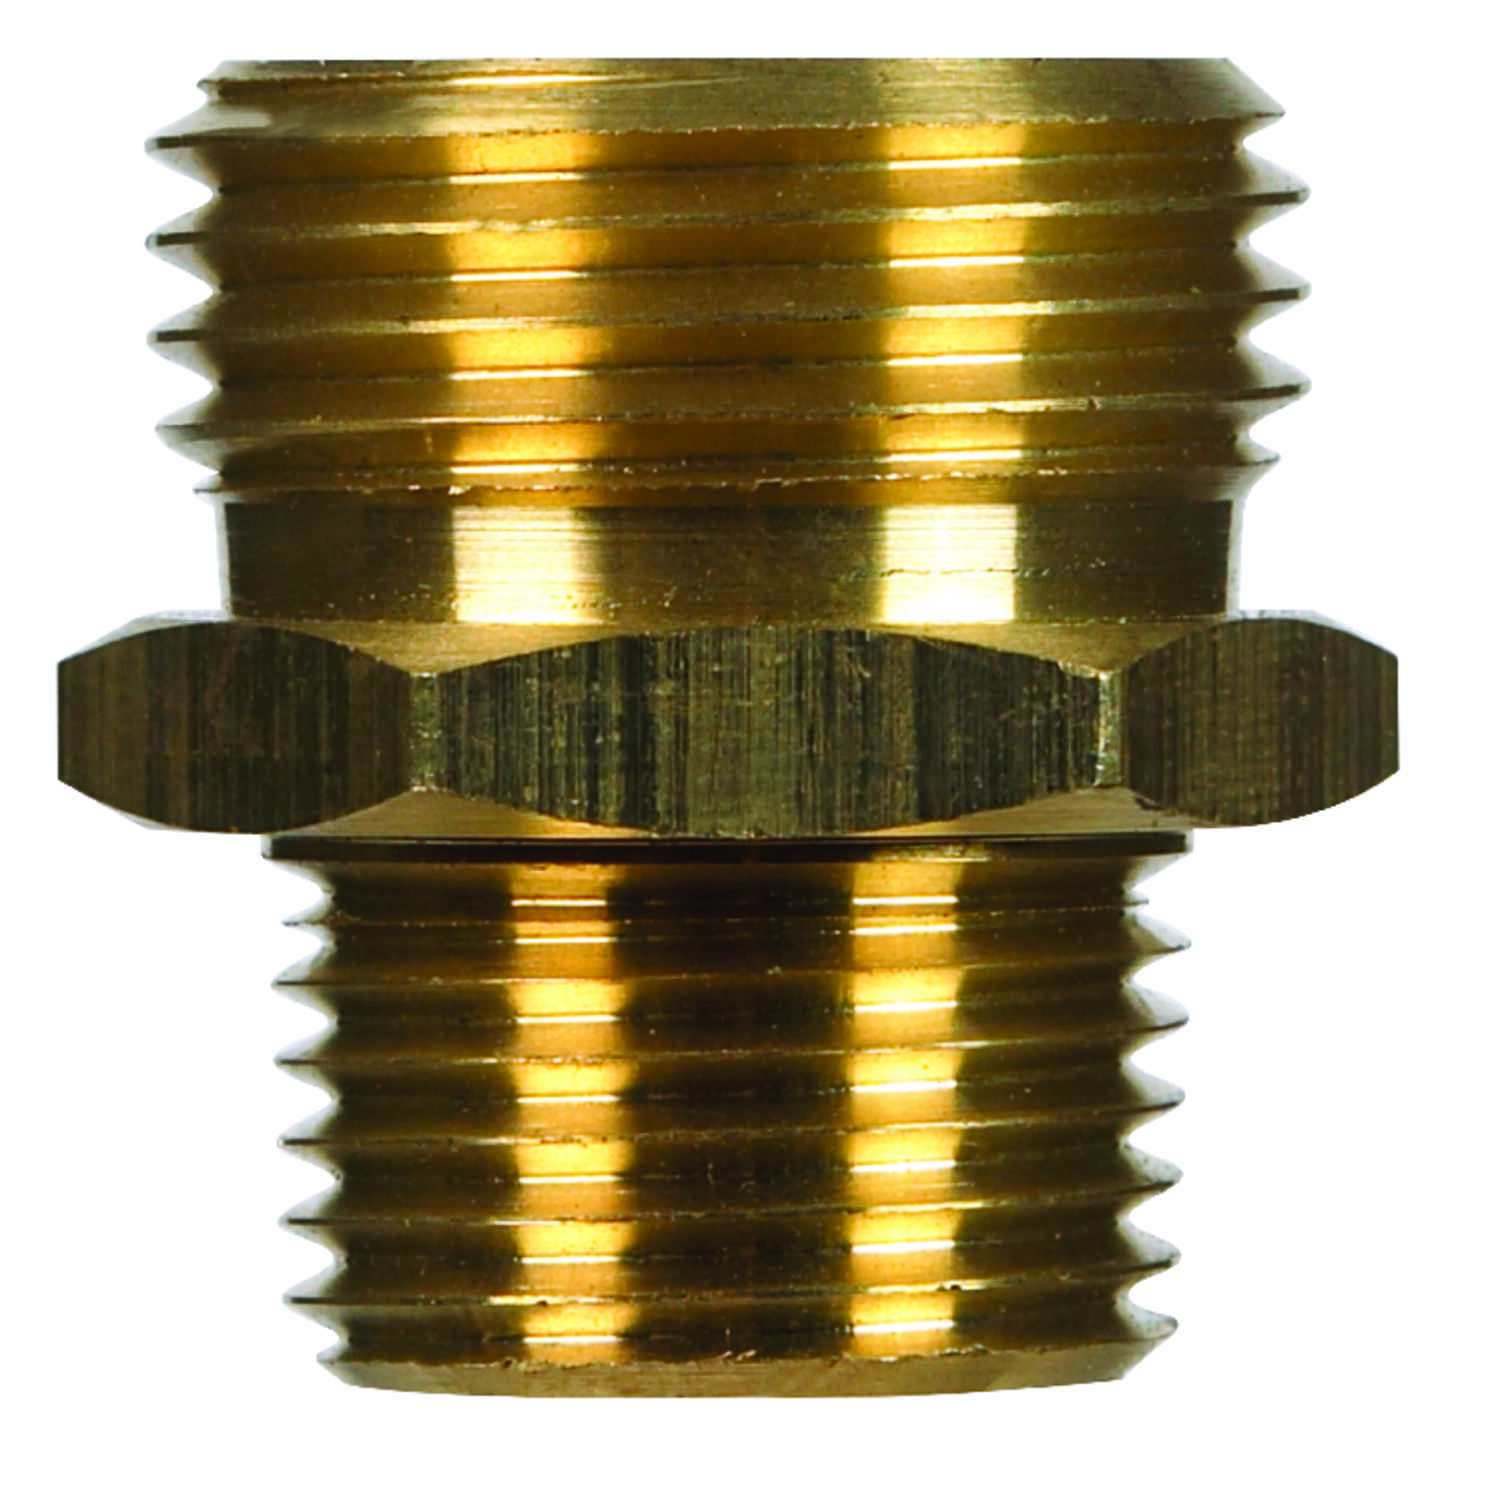 JMF  Brass  Male Hose Adapter  1/2 in. Dia. x 3/4 in. Dia. Yellow  1 pk